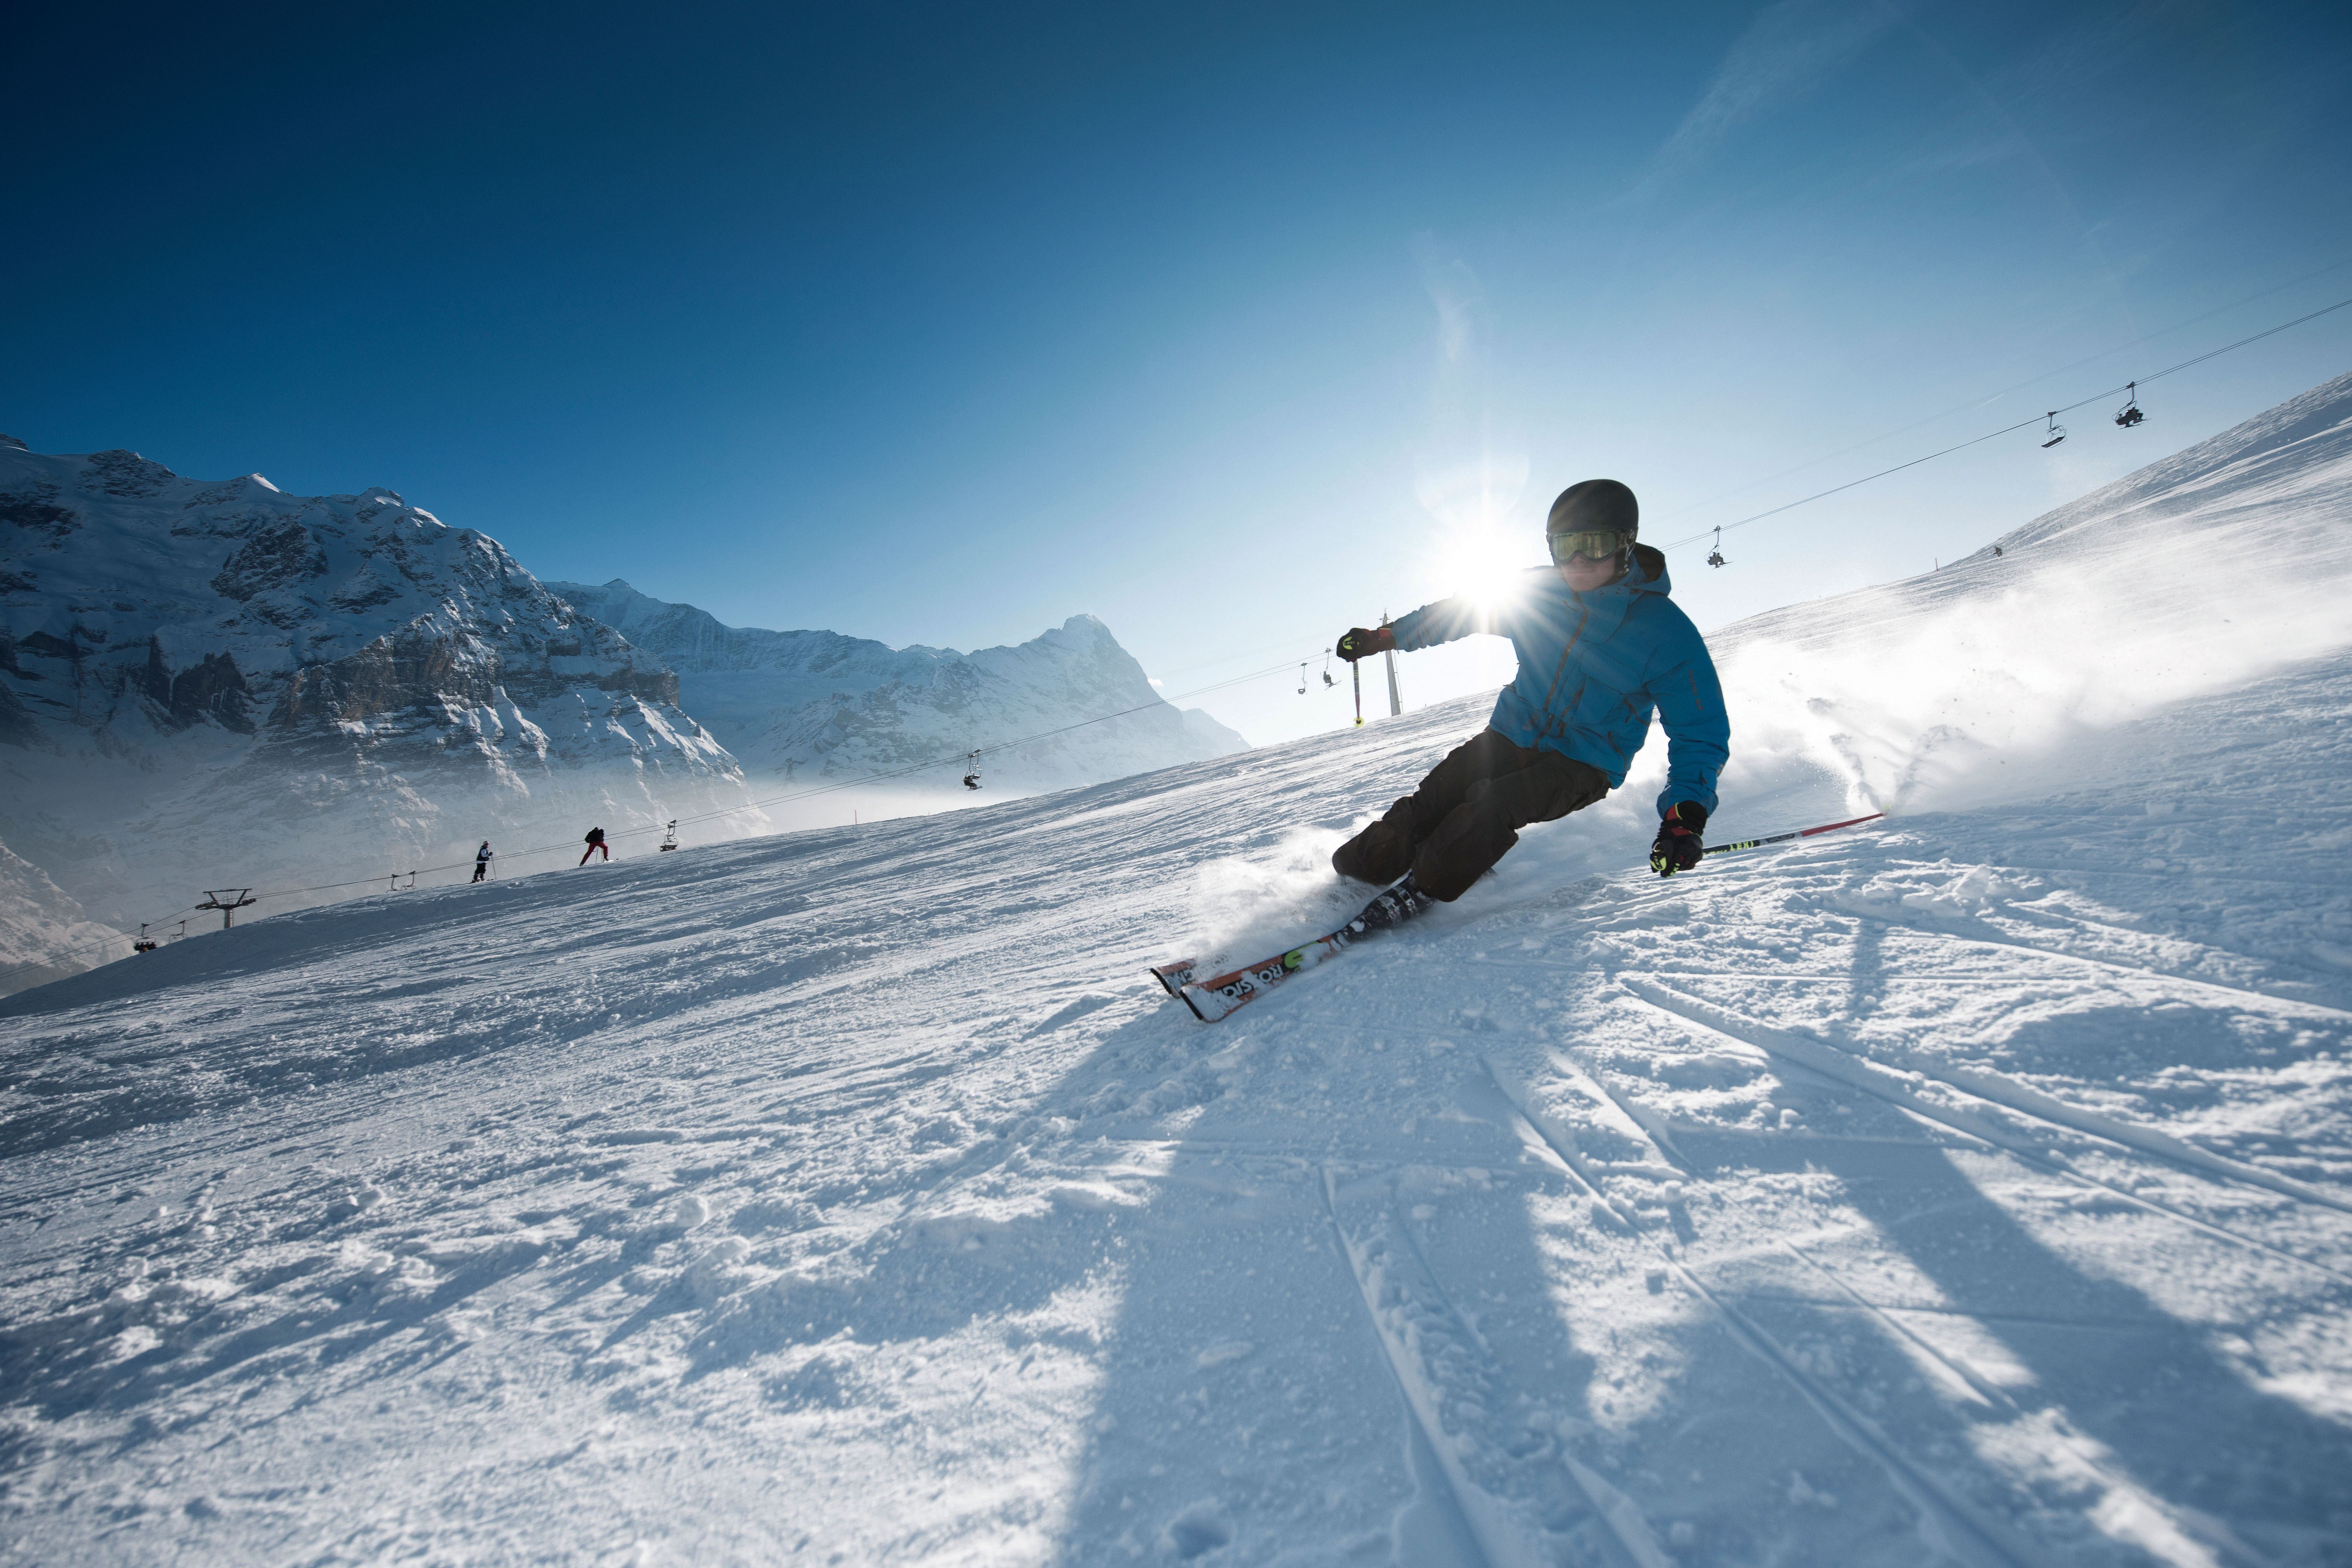 Audi Cars 2016 Wallpapers Sunny Winter Day Perfect For Skiing Winter Sports